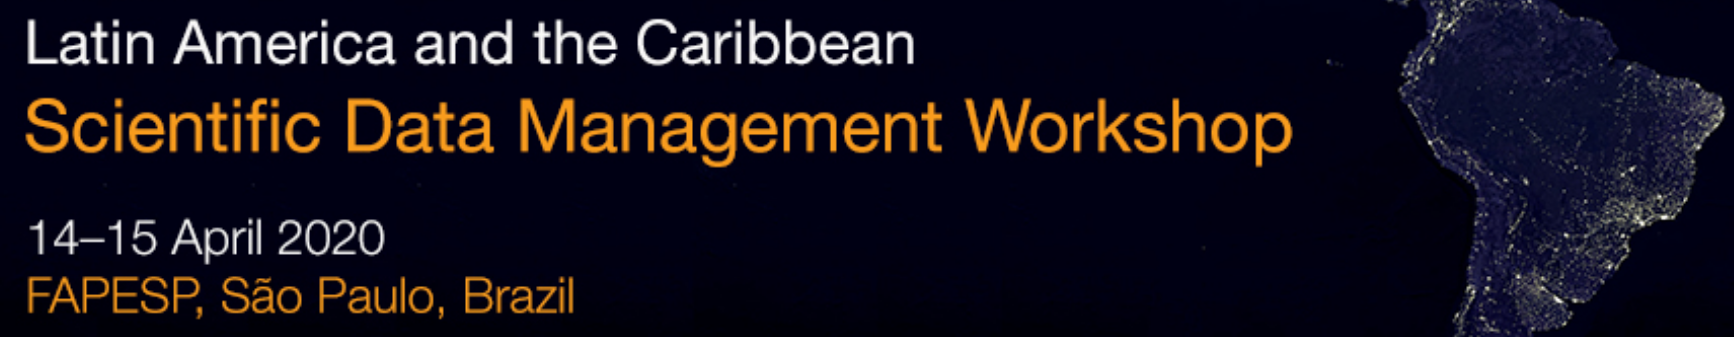 Second Latin America and the Caribbean Scientific Data Management Workshop